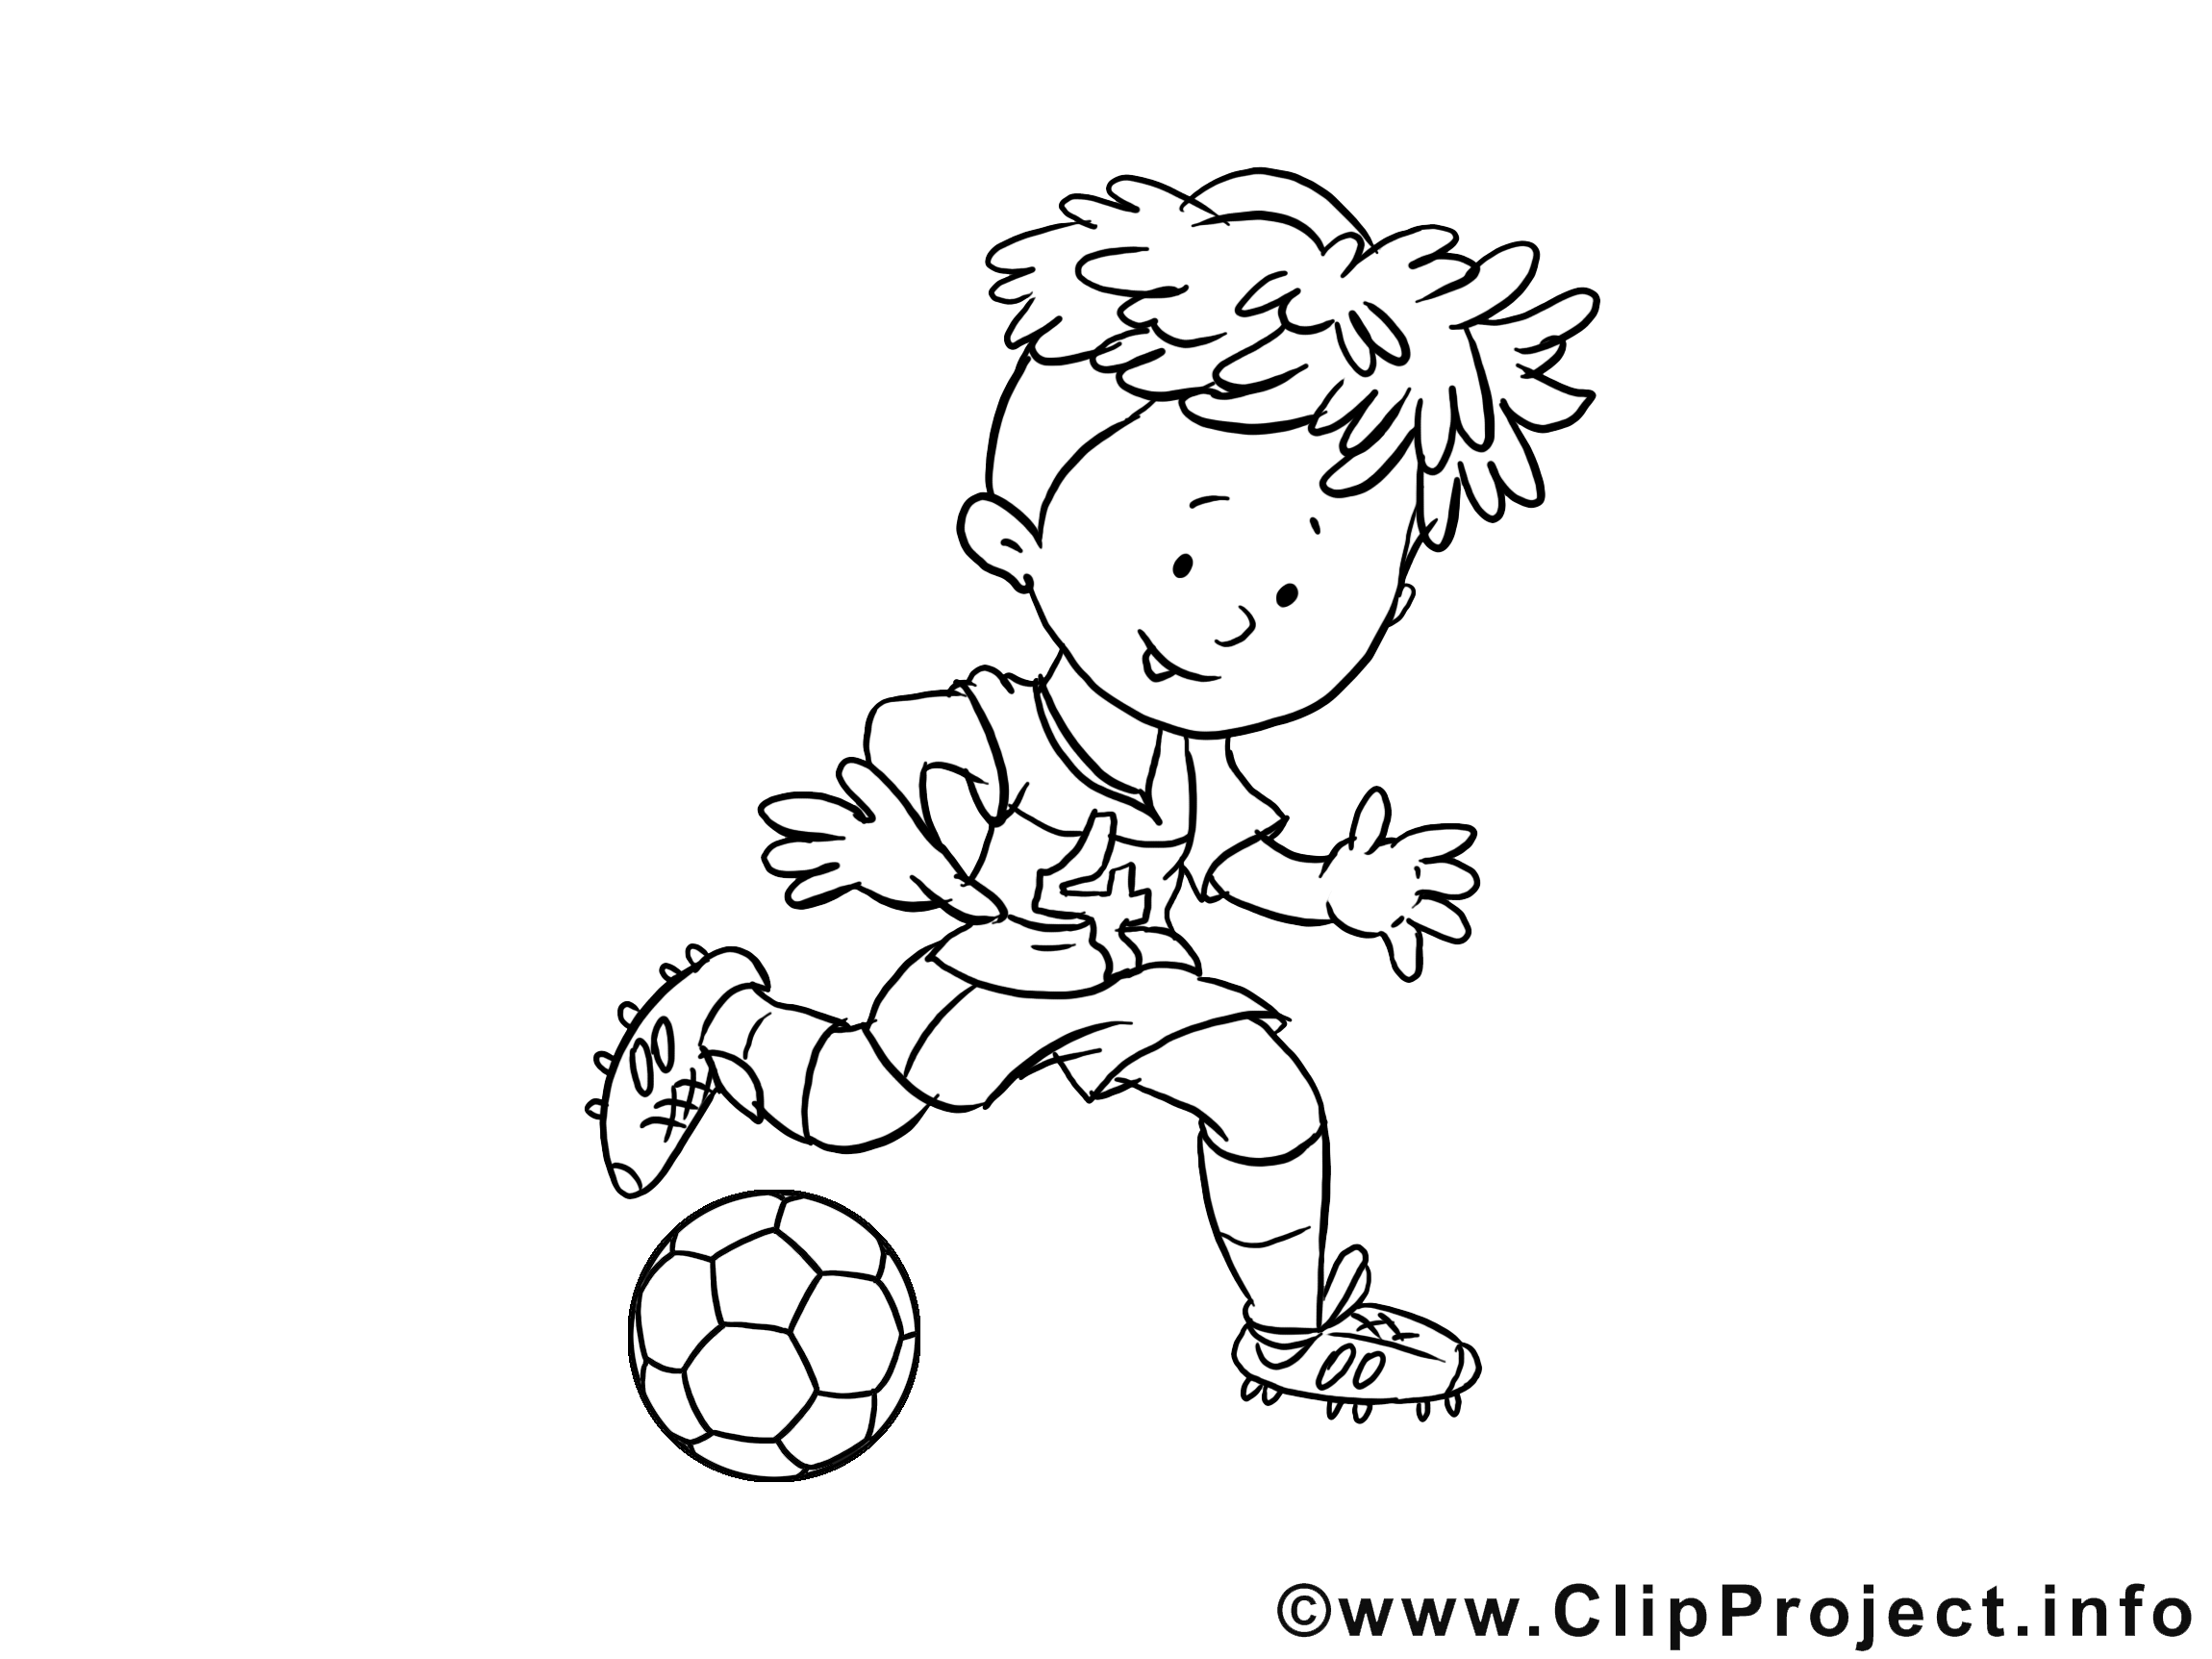 Footballeur clipart football dessins colorier - Coloriage footballeur ...